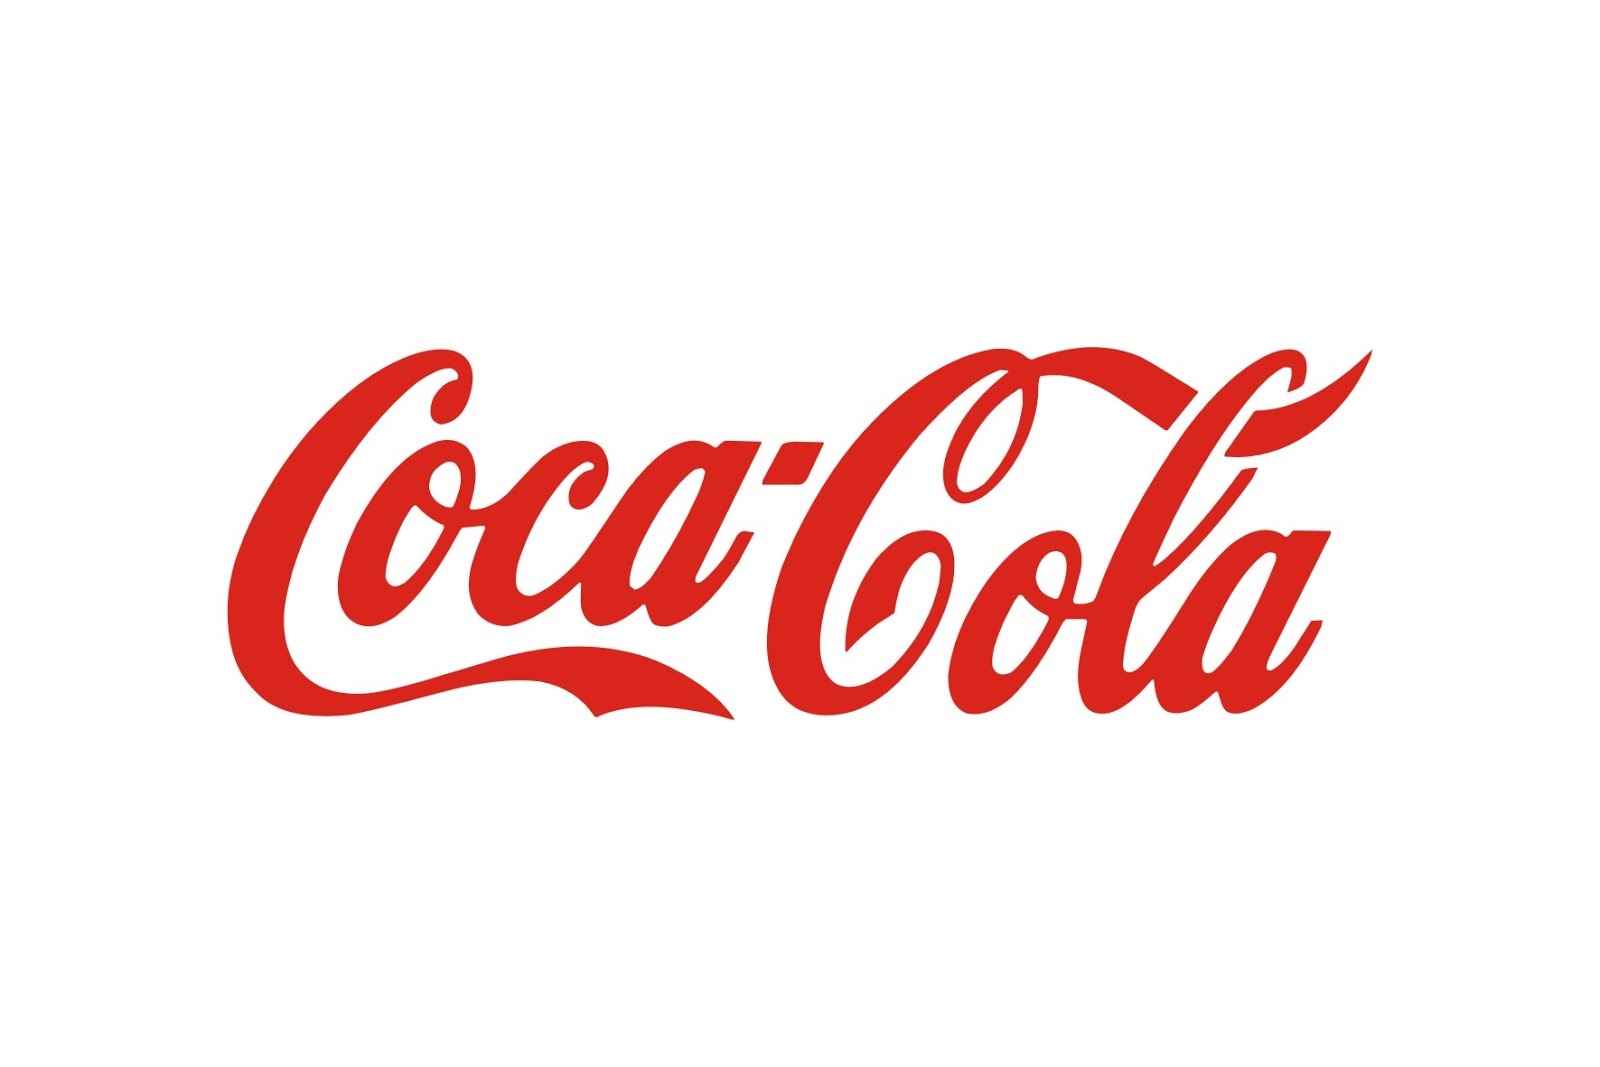 coca cola logo evolution 2016 saw coca-cola change its much celebrated talking about the change one really can't miss mentioning the epic spencerian script logo and how it has.